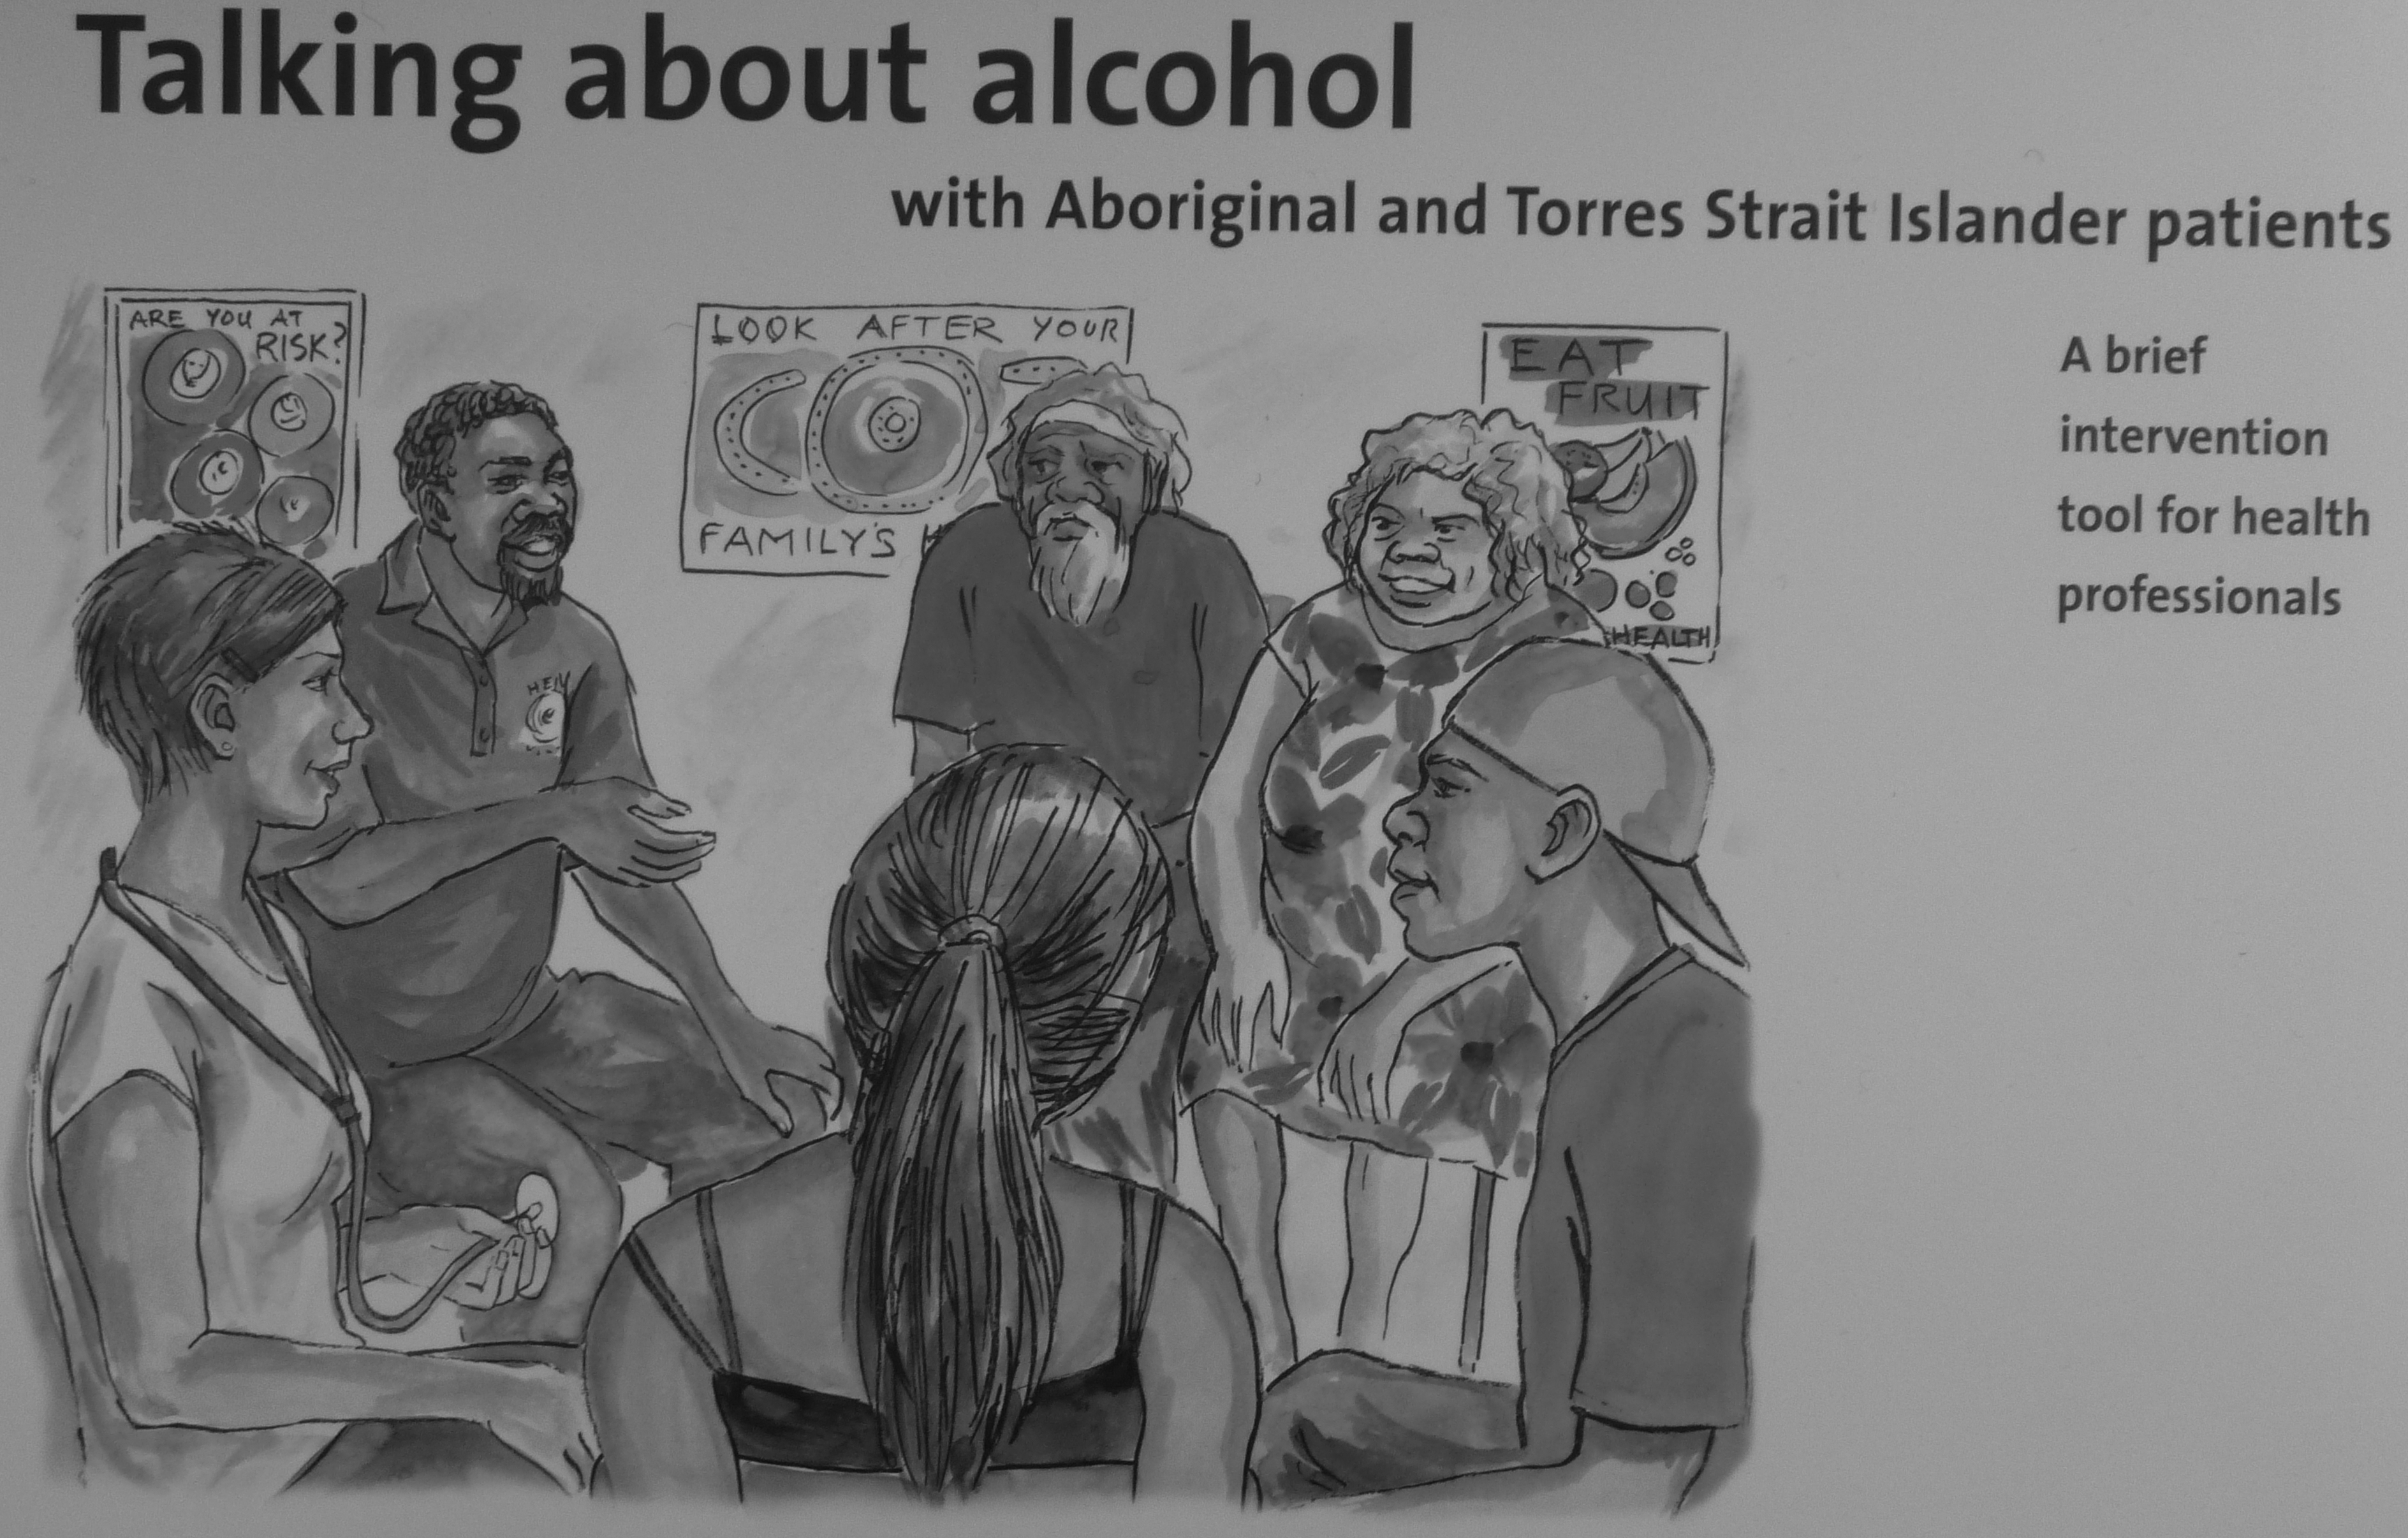 Talking about alcohol with Aboriginal and Torres Strait Islander patients